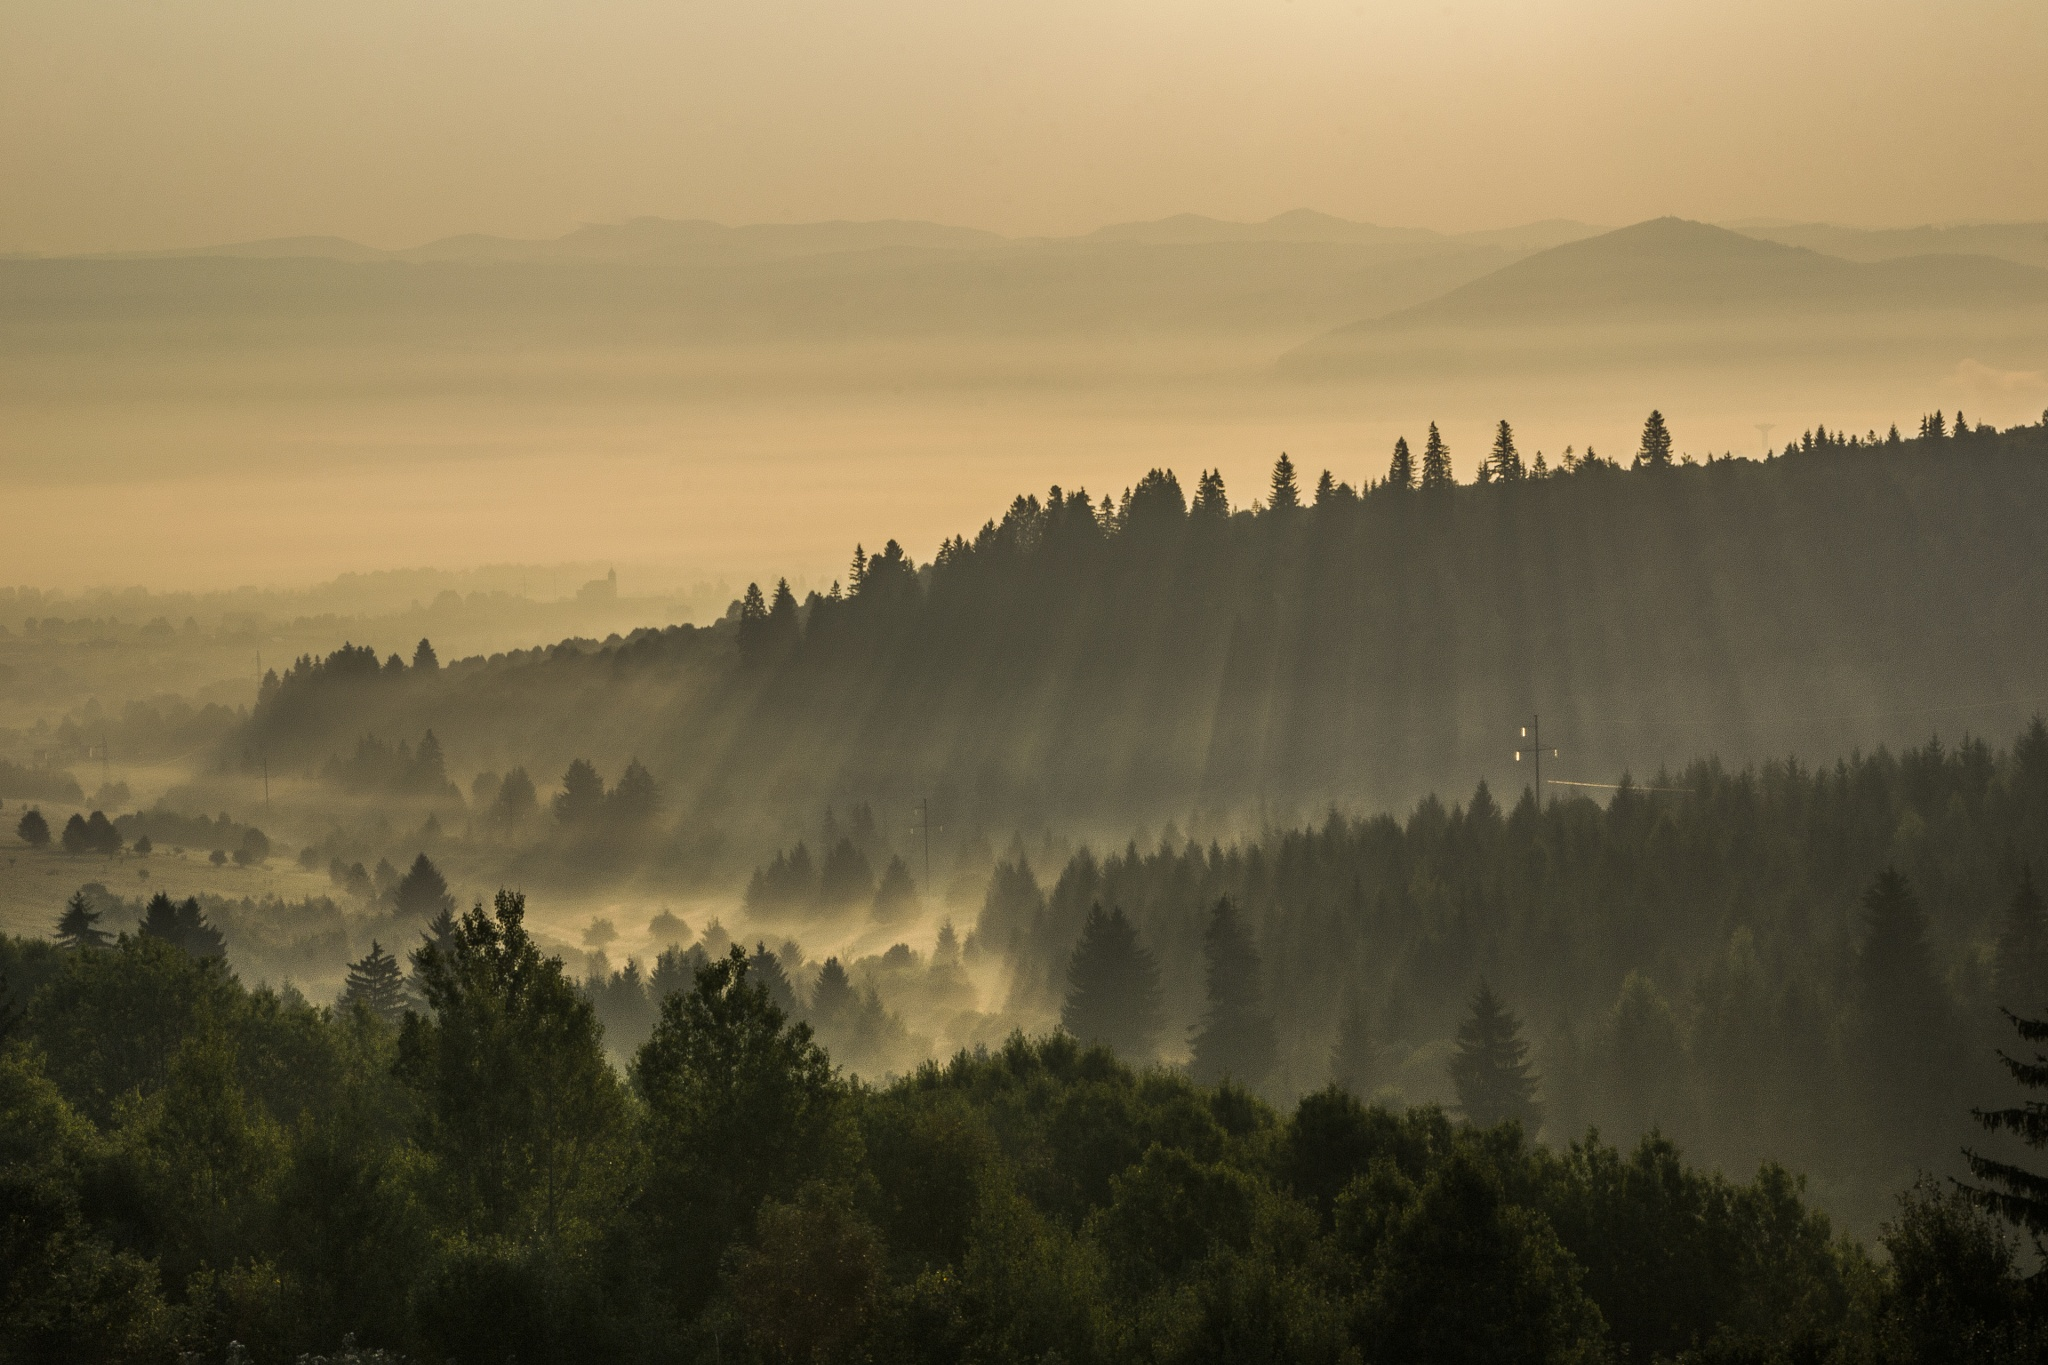 Foggy sunrise over the wood by hdotyi